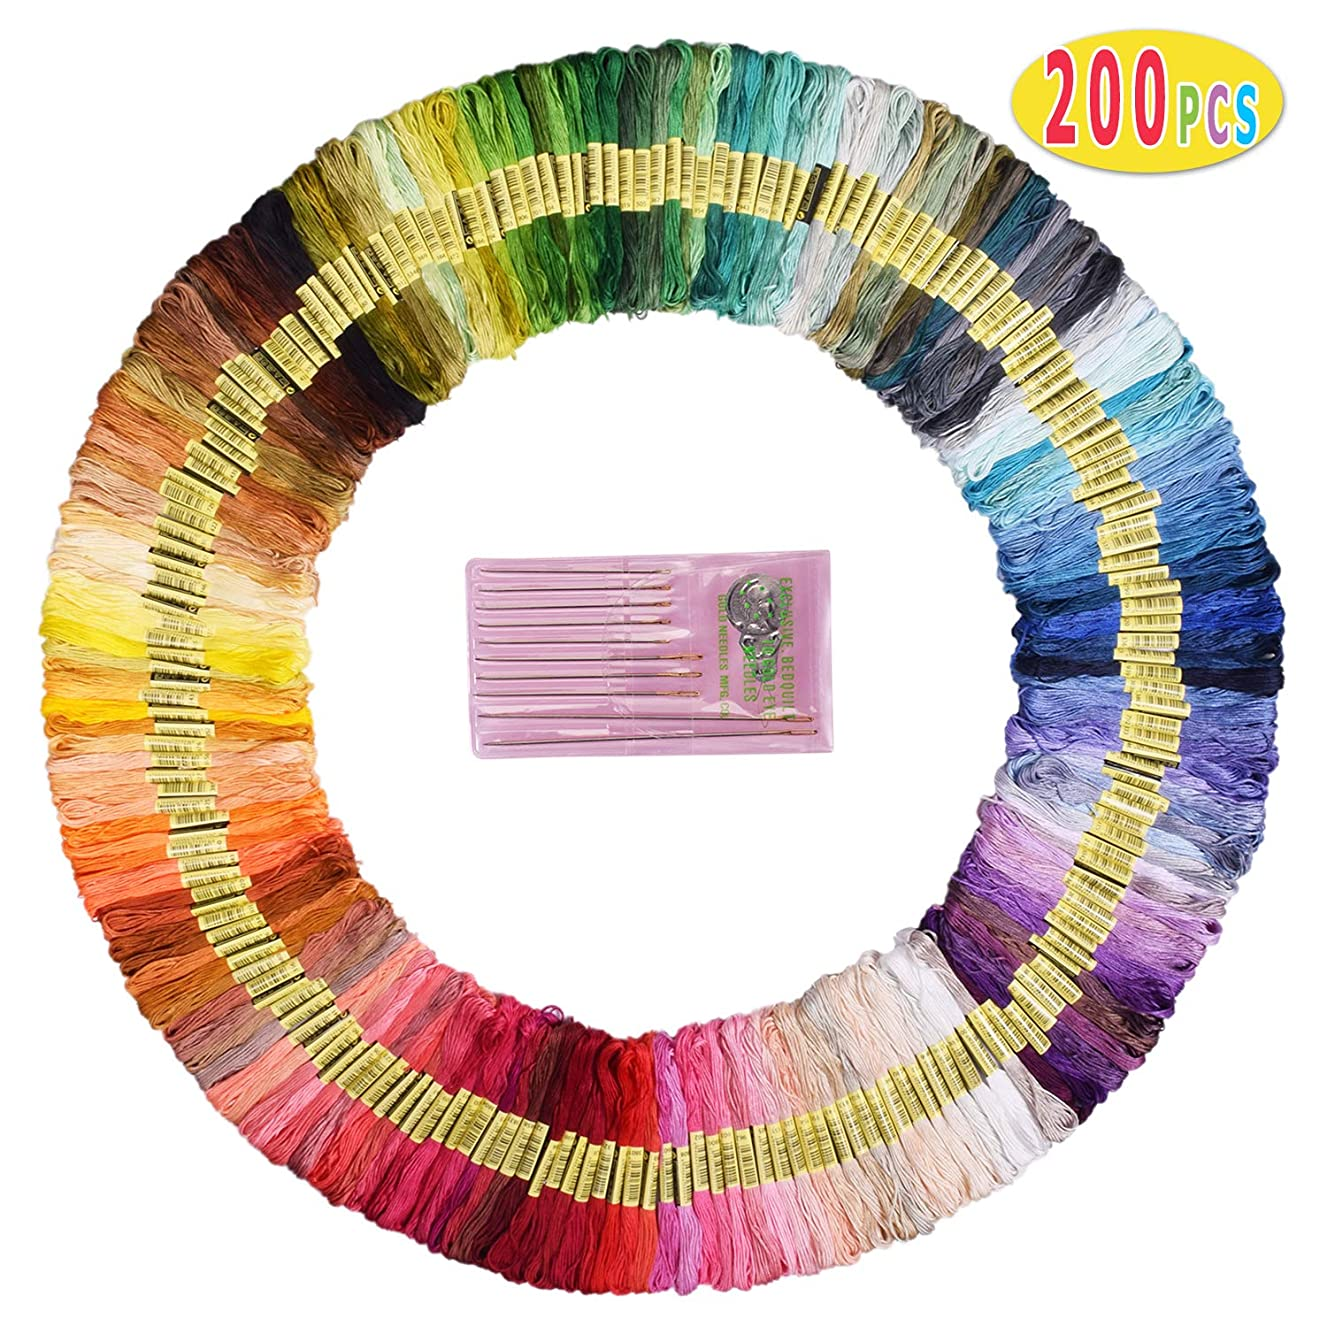 Max Fun Embroidery Floss 200 Skeins Friendship Bracelets Floss Rainbow Color Embroidery Thread Cross Stitch Floss (200 Skeins)